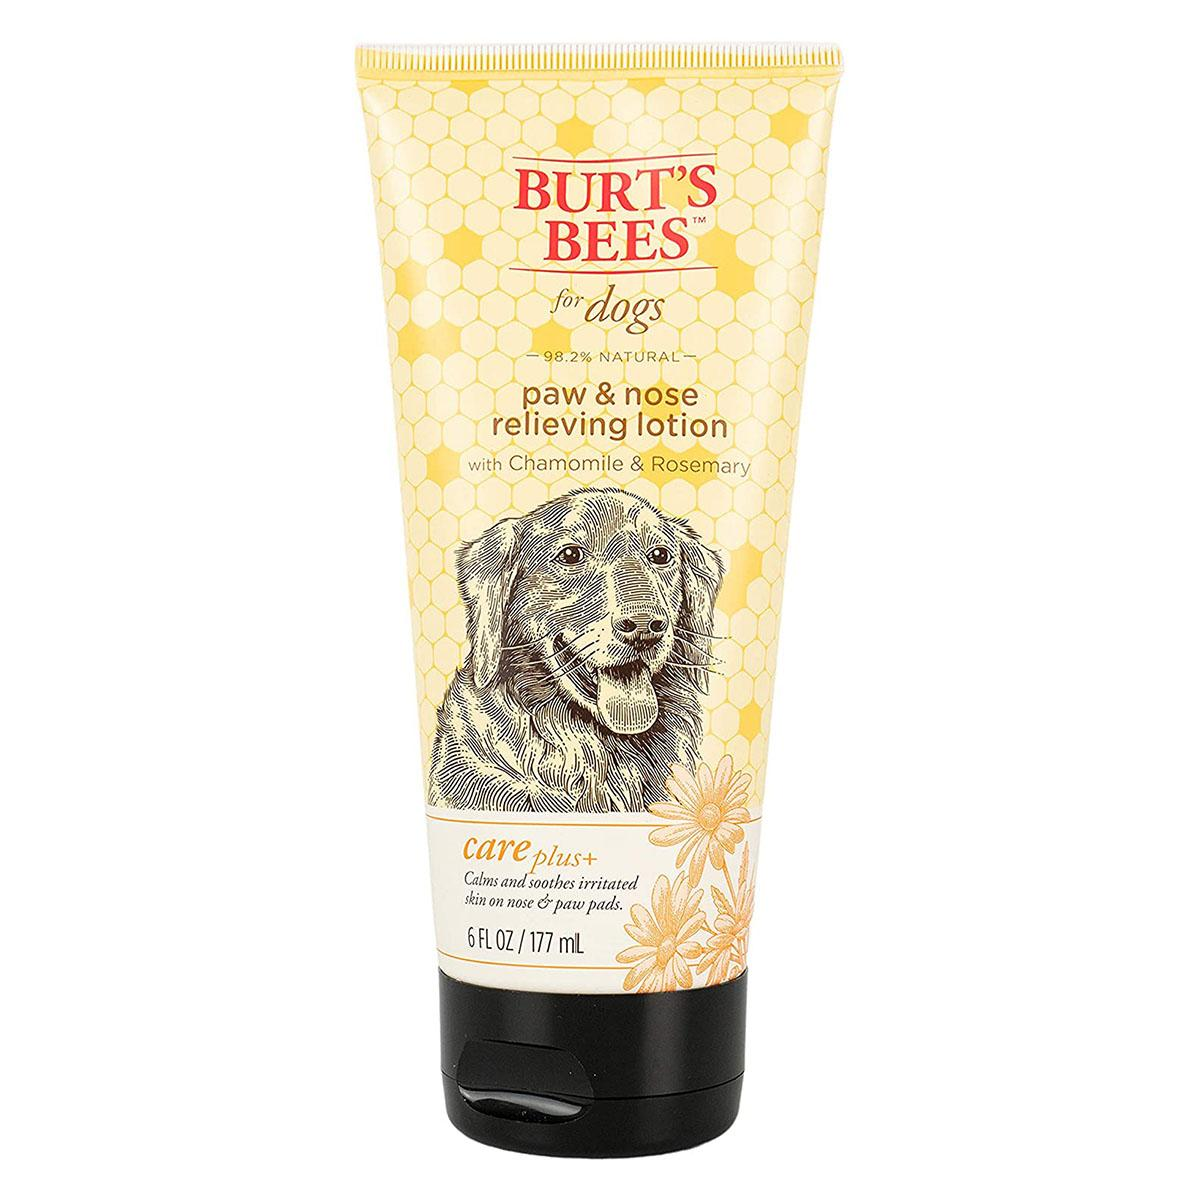 Burt's Bees for Dogs Care Plus+ Natural Relieving Paw and Nose Lotion - Chamomile and Rosemary